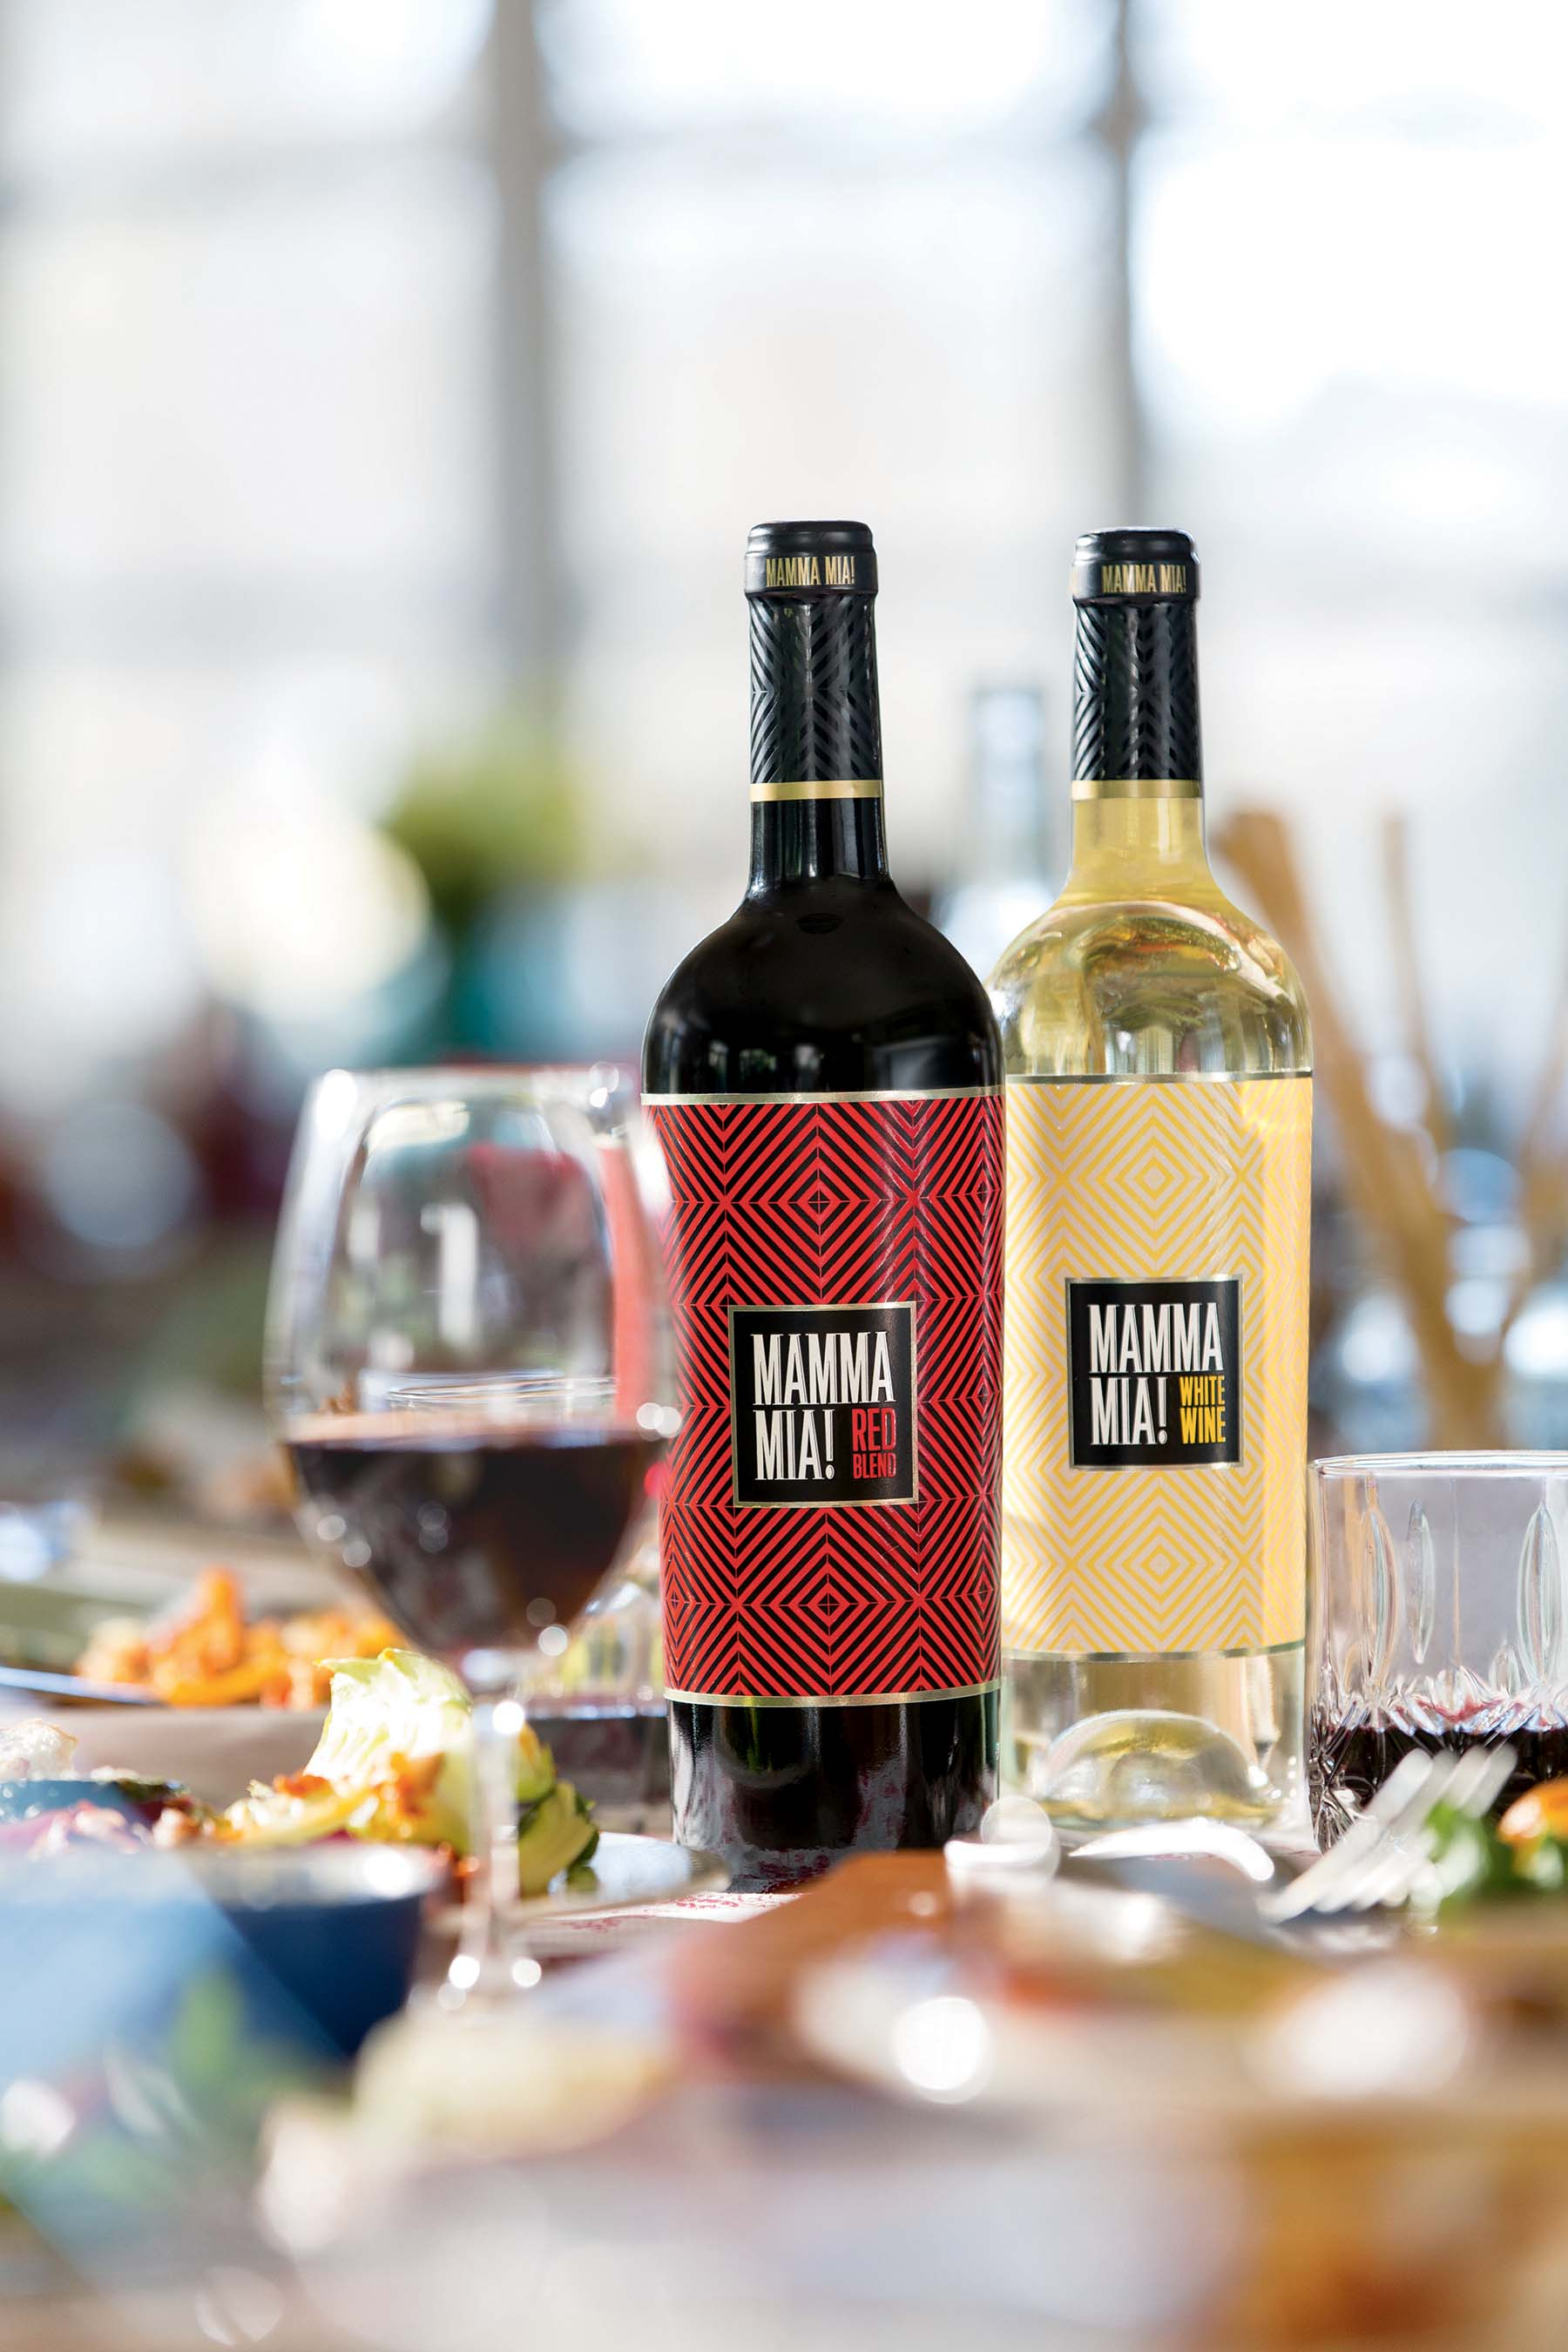 Available nationwide, Mamma Mia Red Blend and Mamma Mia White Blend are wines to share around crowded tables filled with family, friends, laughter and—and of course, delicious food.